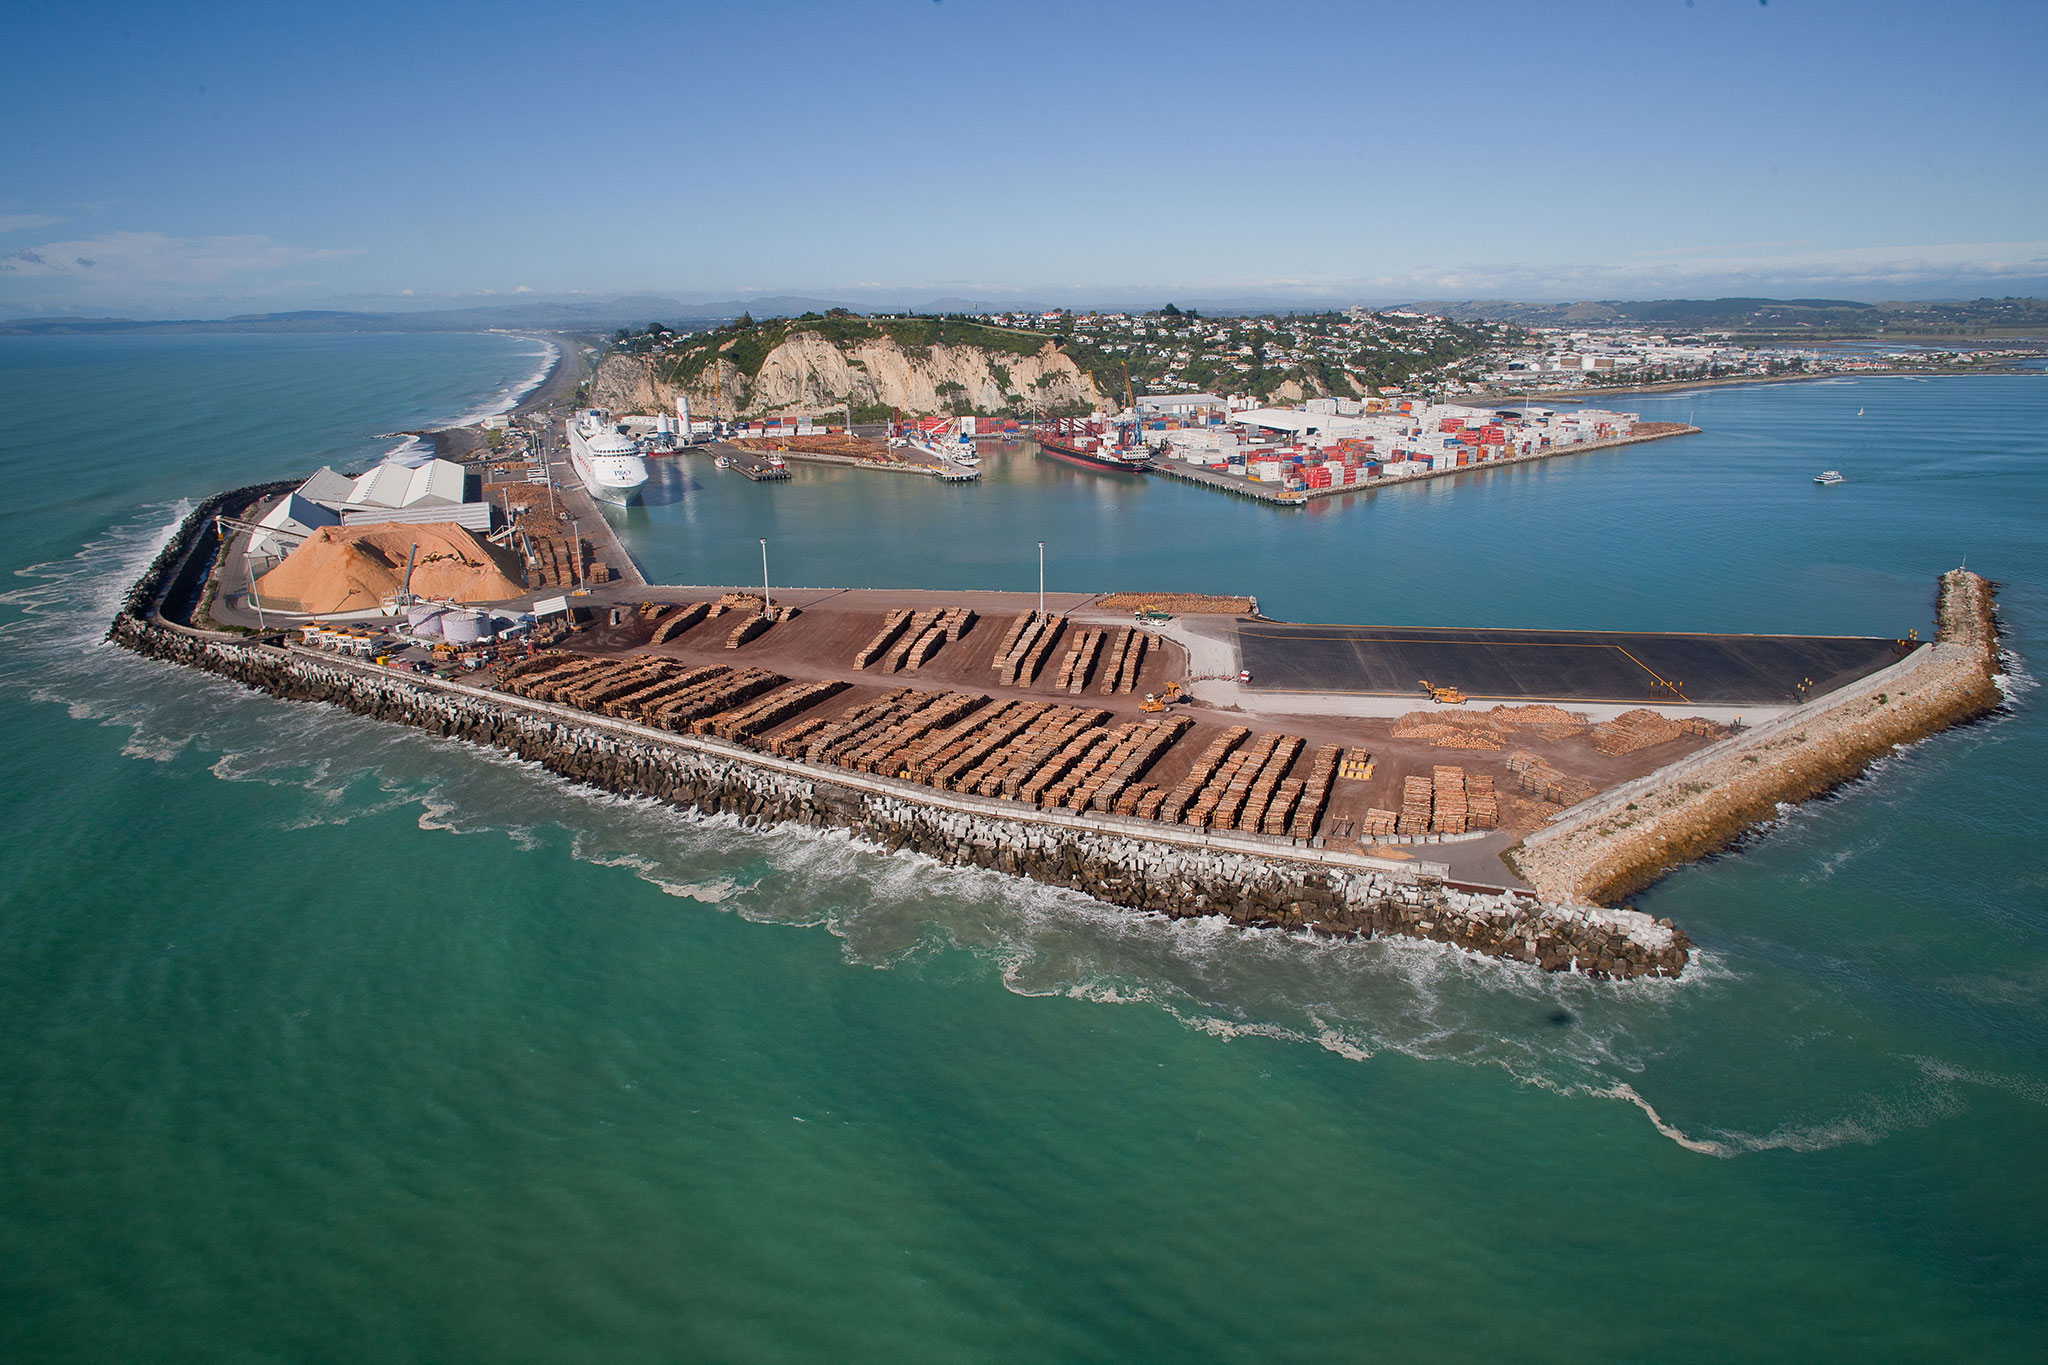 the port of napier in new zealand is deserved by marfret